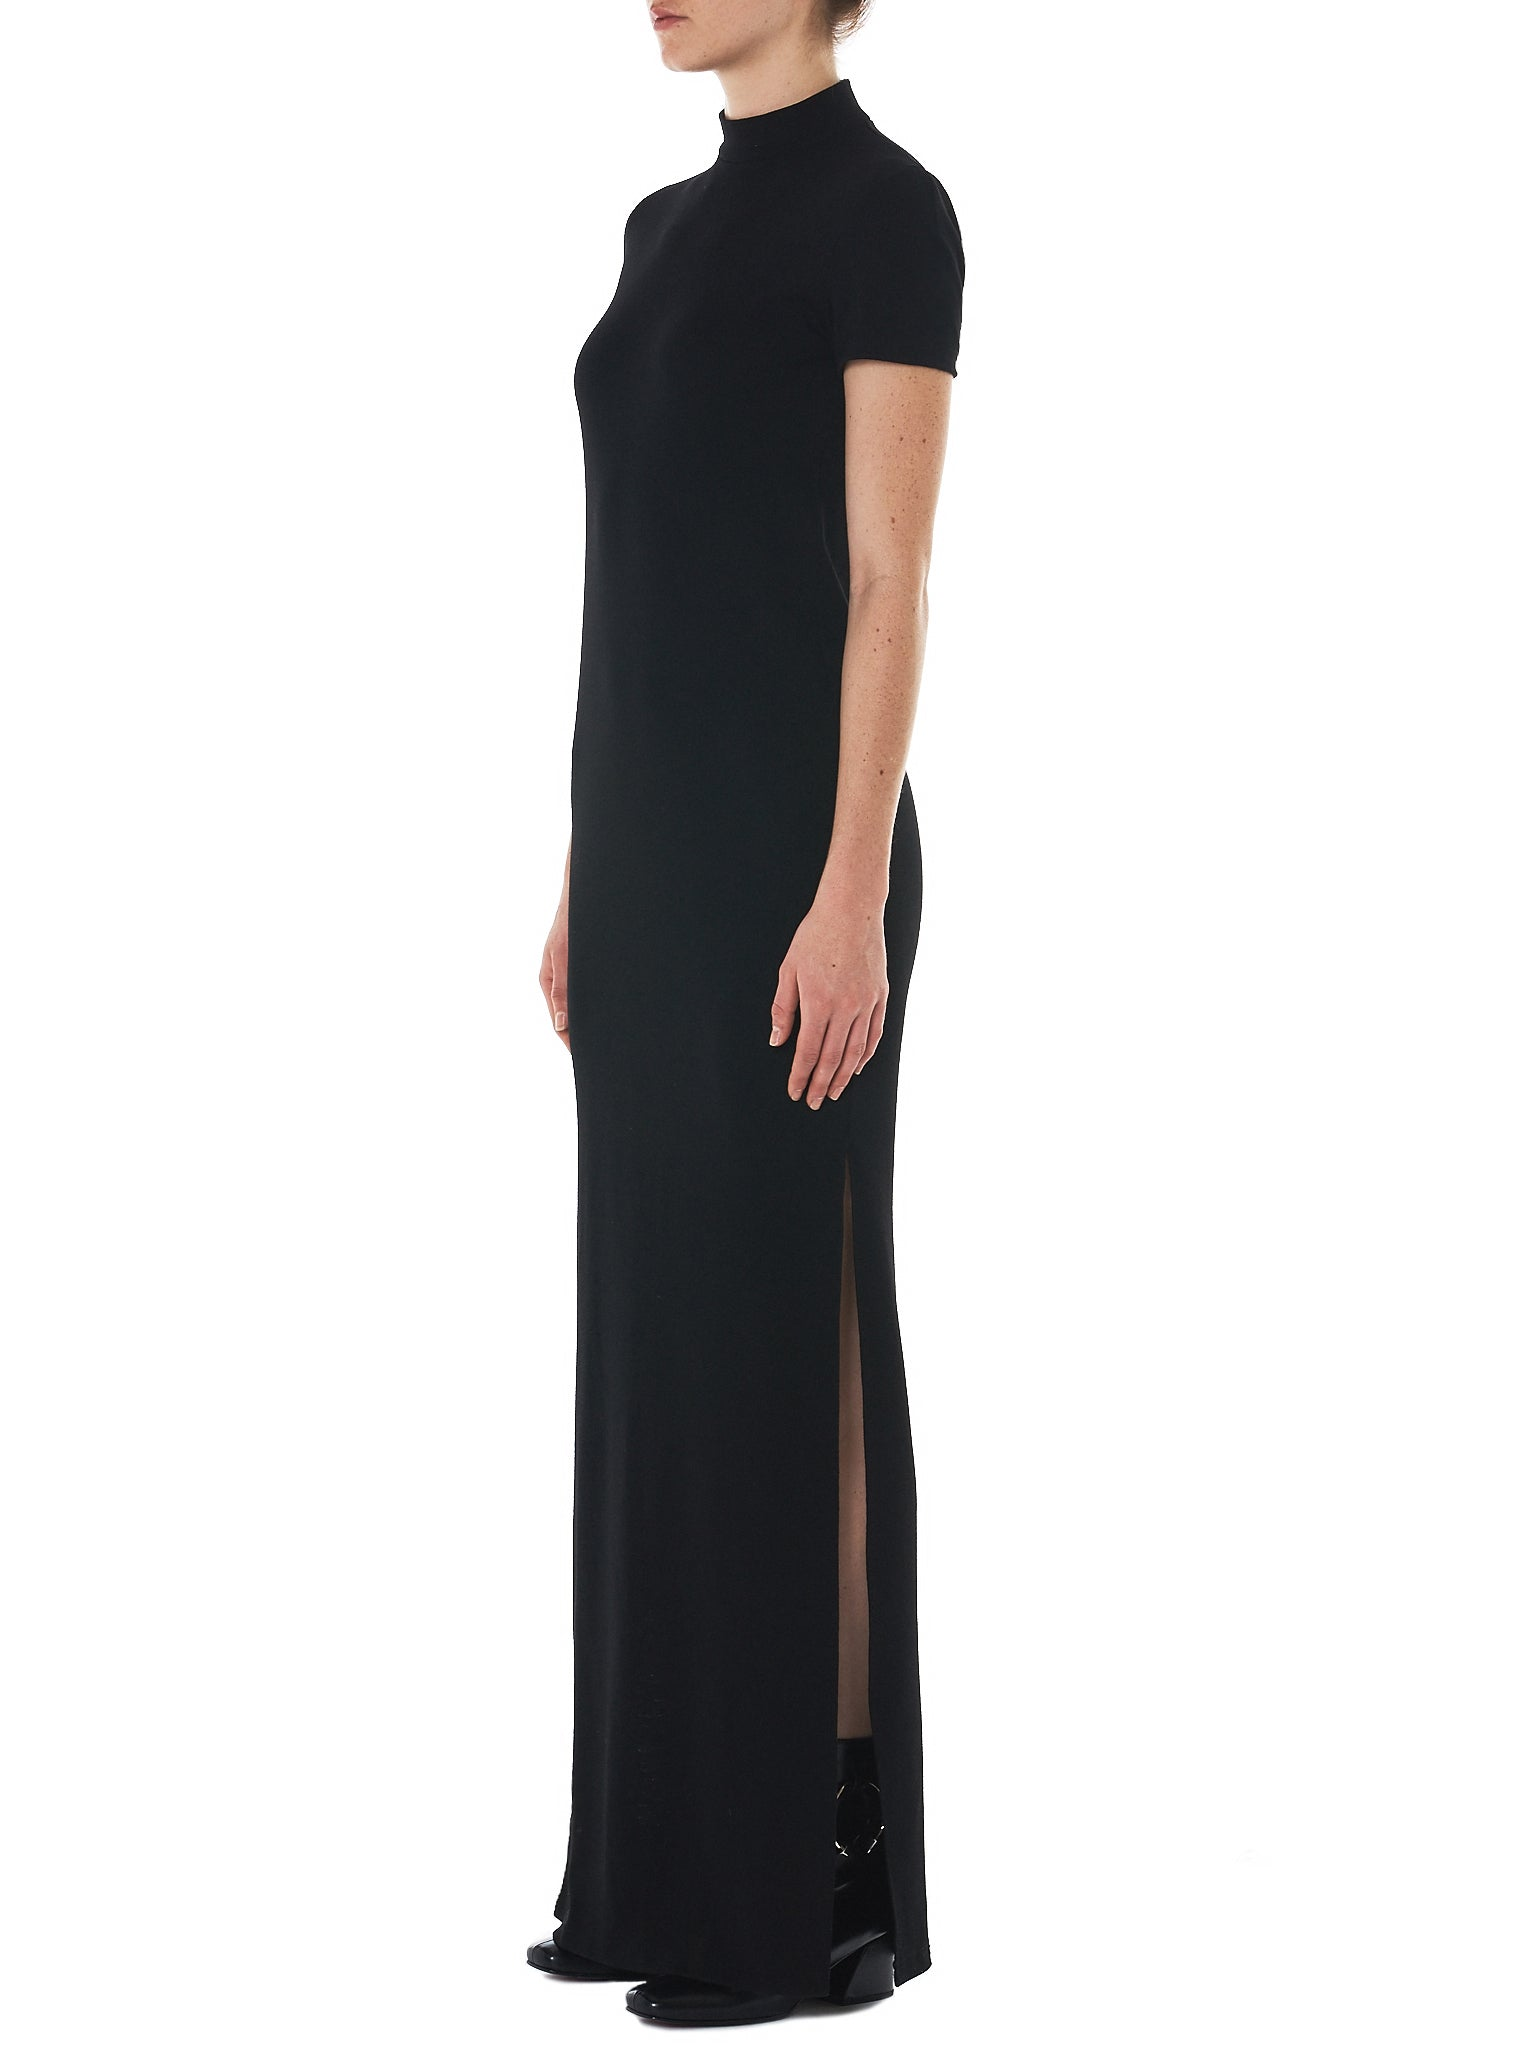 Kwaidan Long Dress - Hlorenzo Side